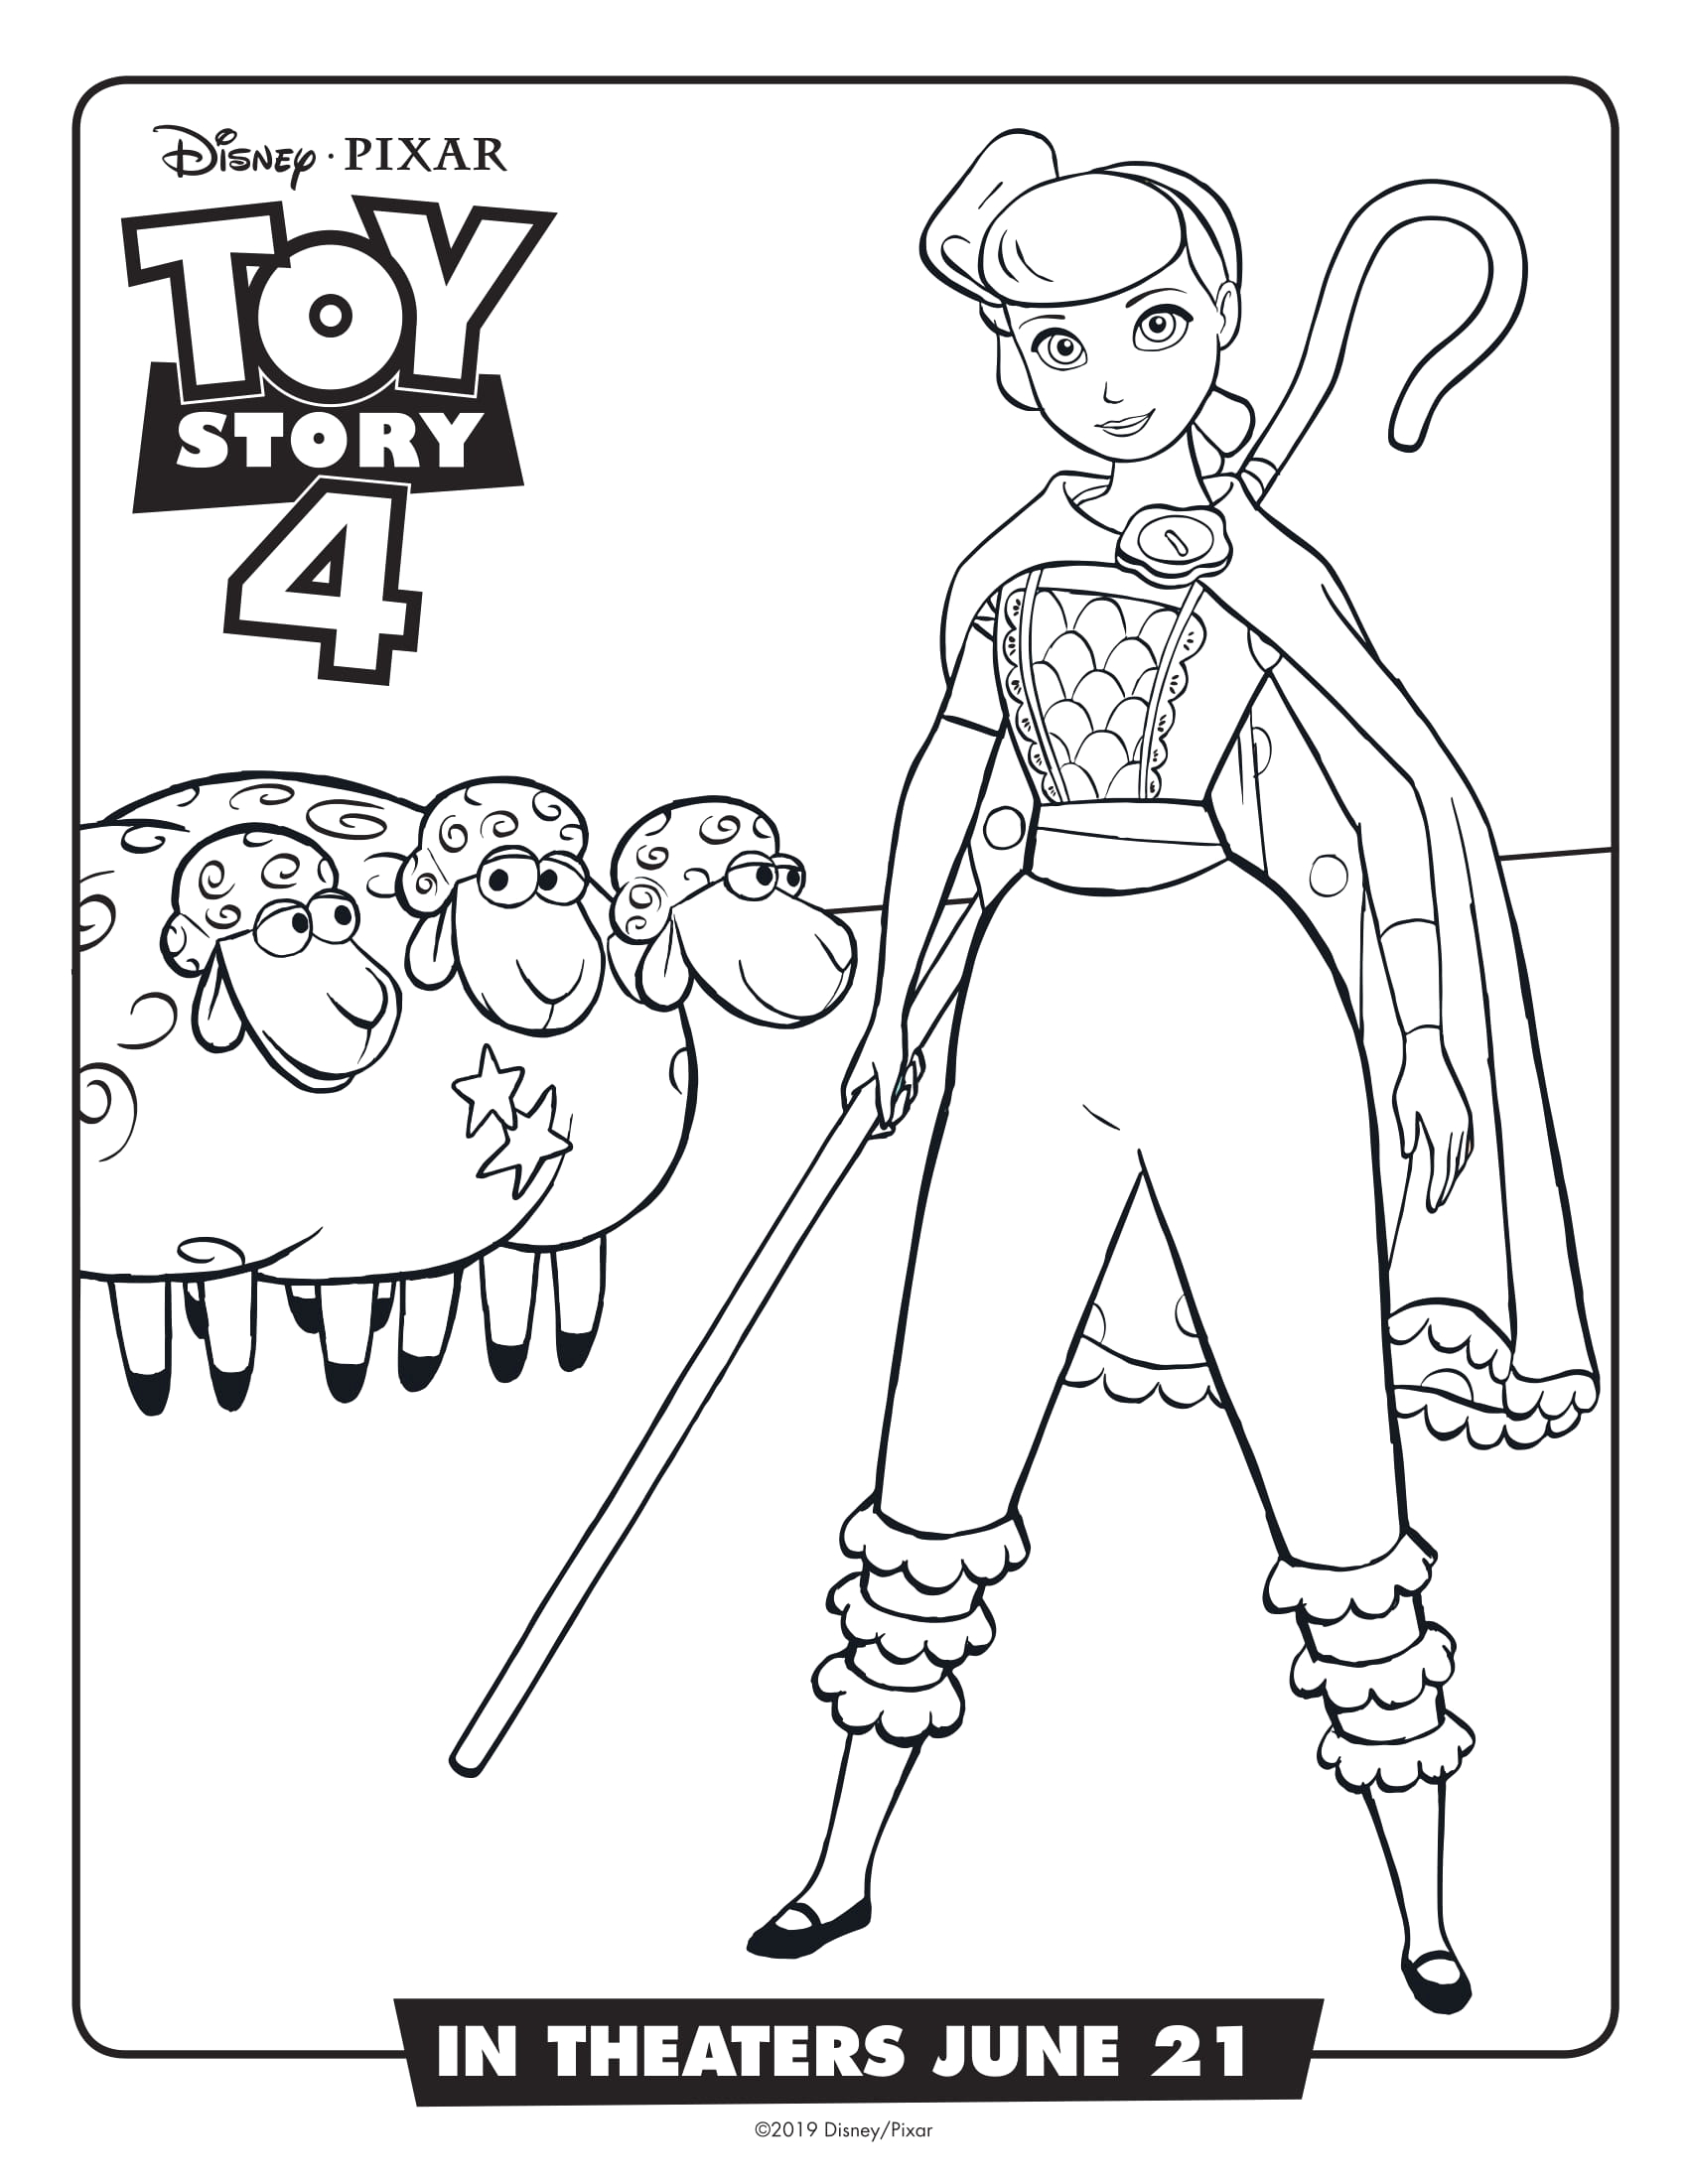 Toy Story 4 Bo Peep Coloring Pages toy Story 4 Coloring Pages Best Coloring Pages for Kids